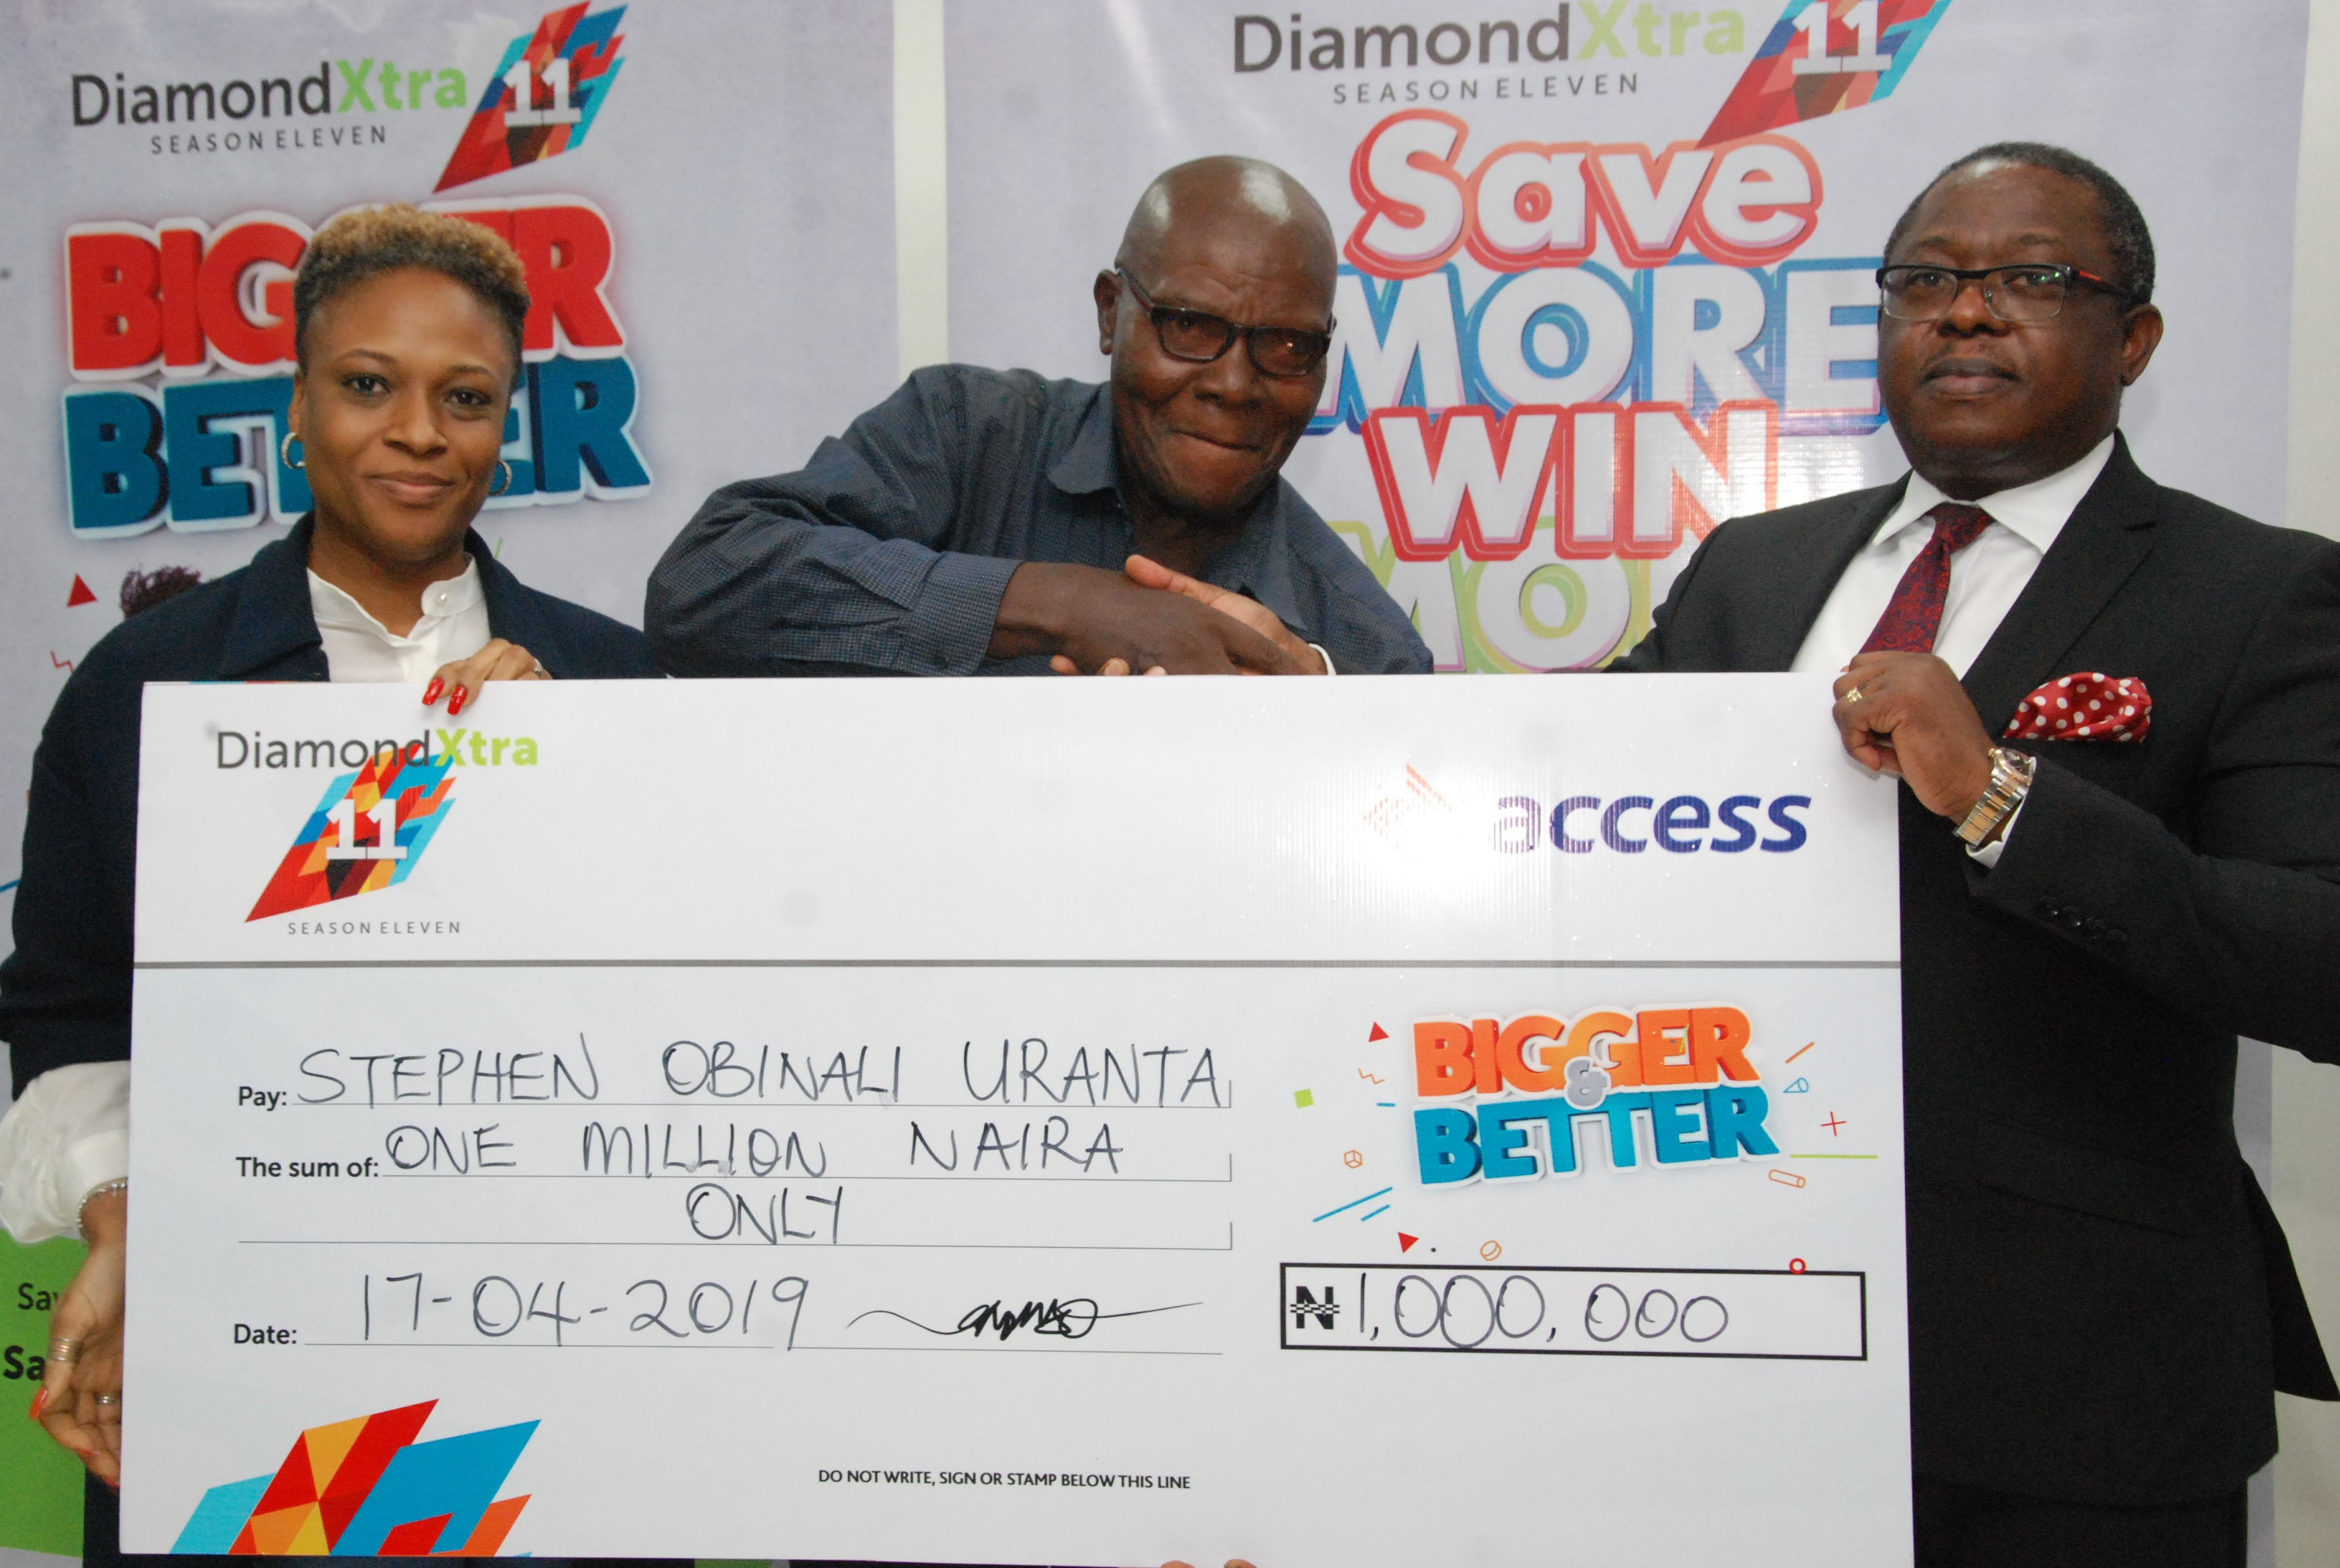 It's raining millionaires as Access Bank and DiamondXtra reward